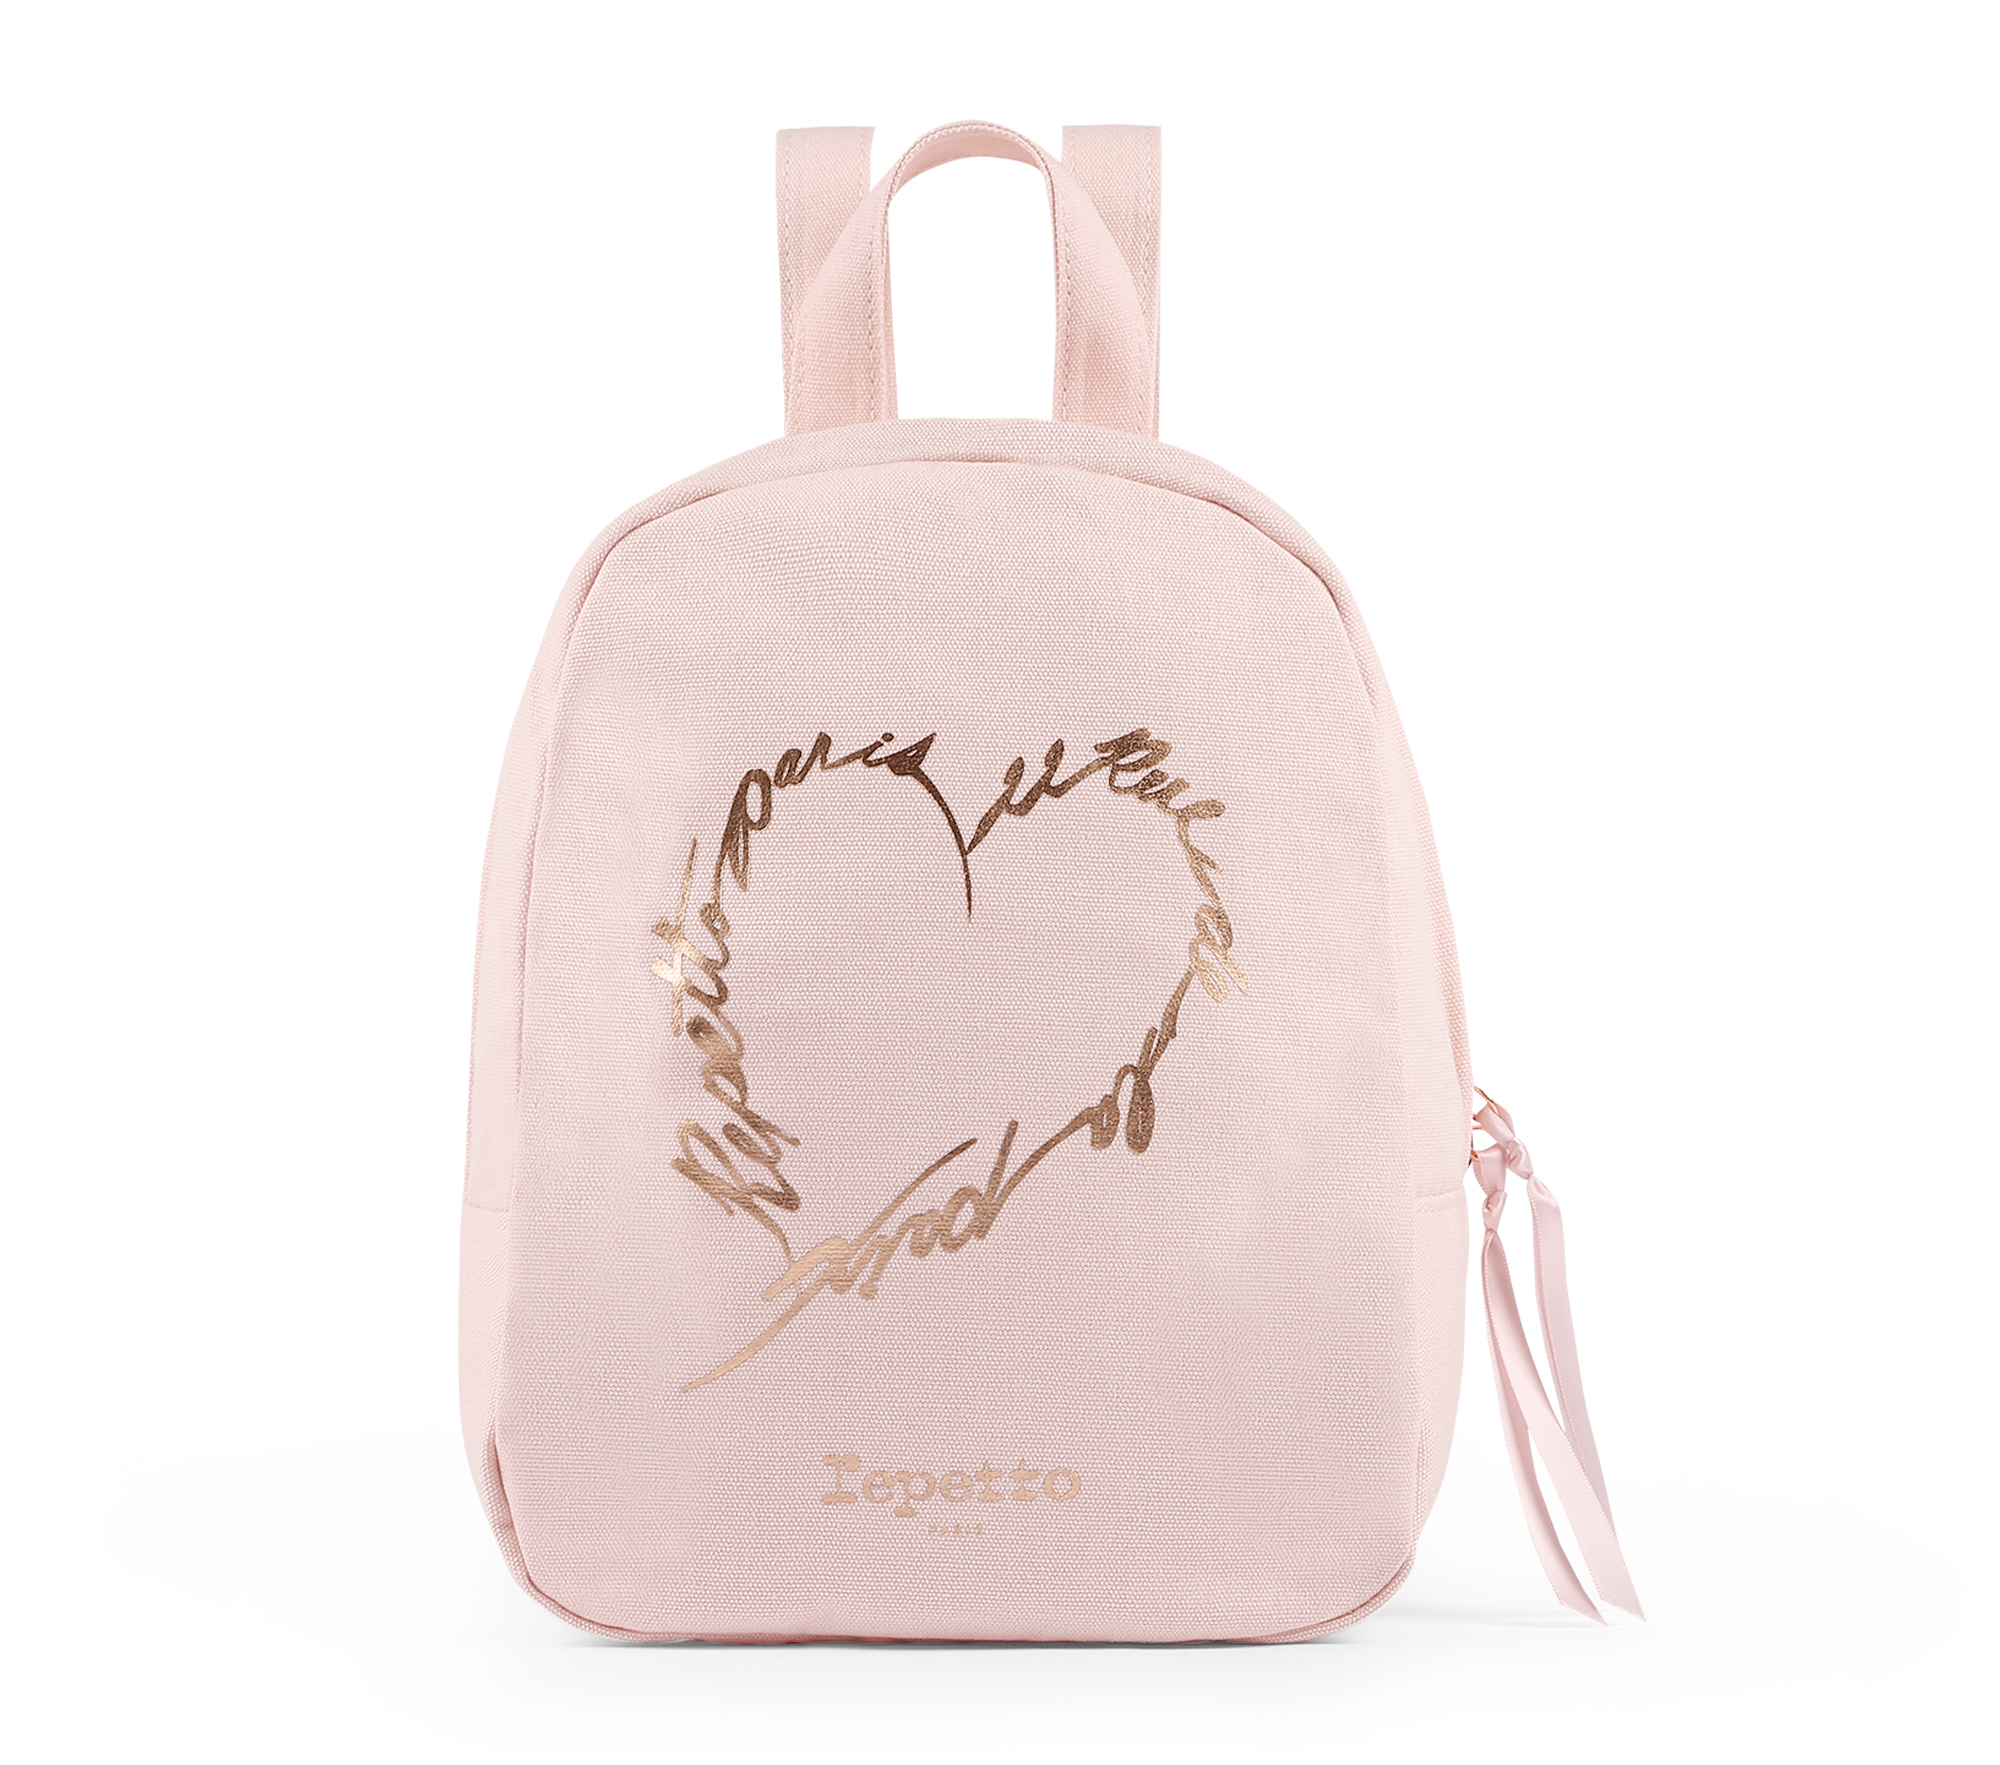 We love Repetto Girls backpack